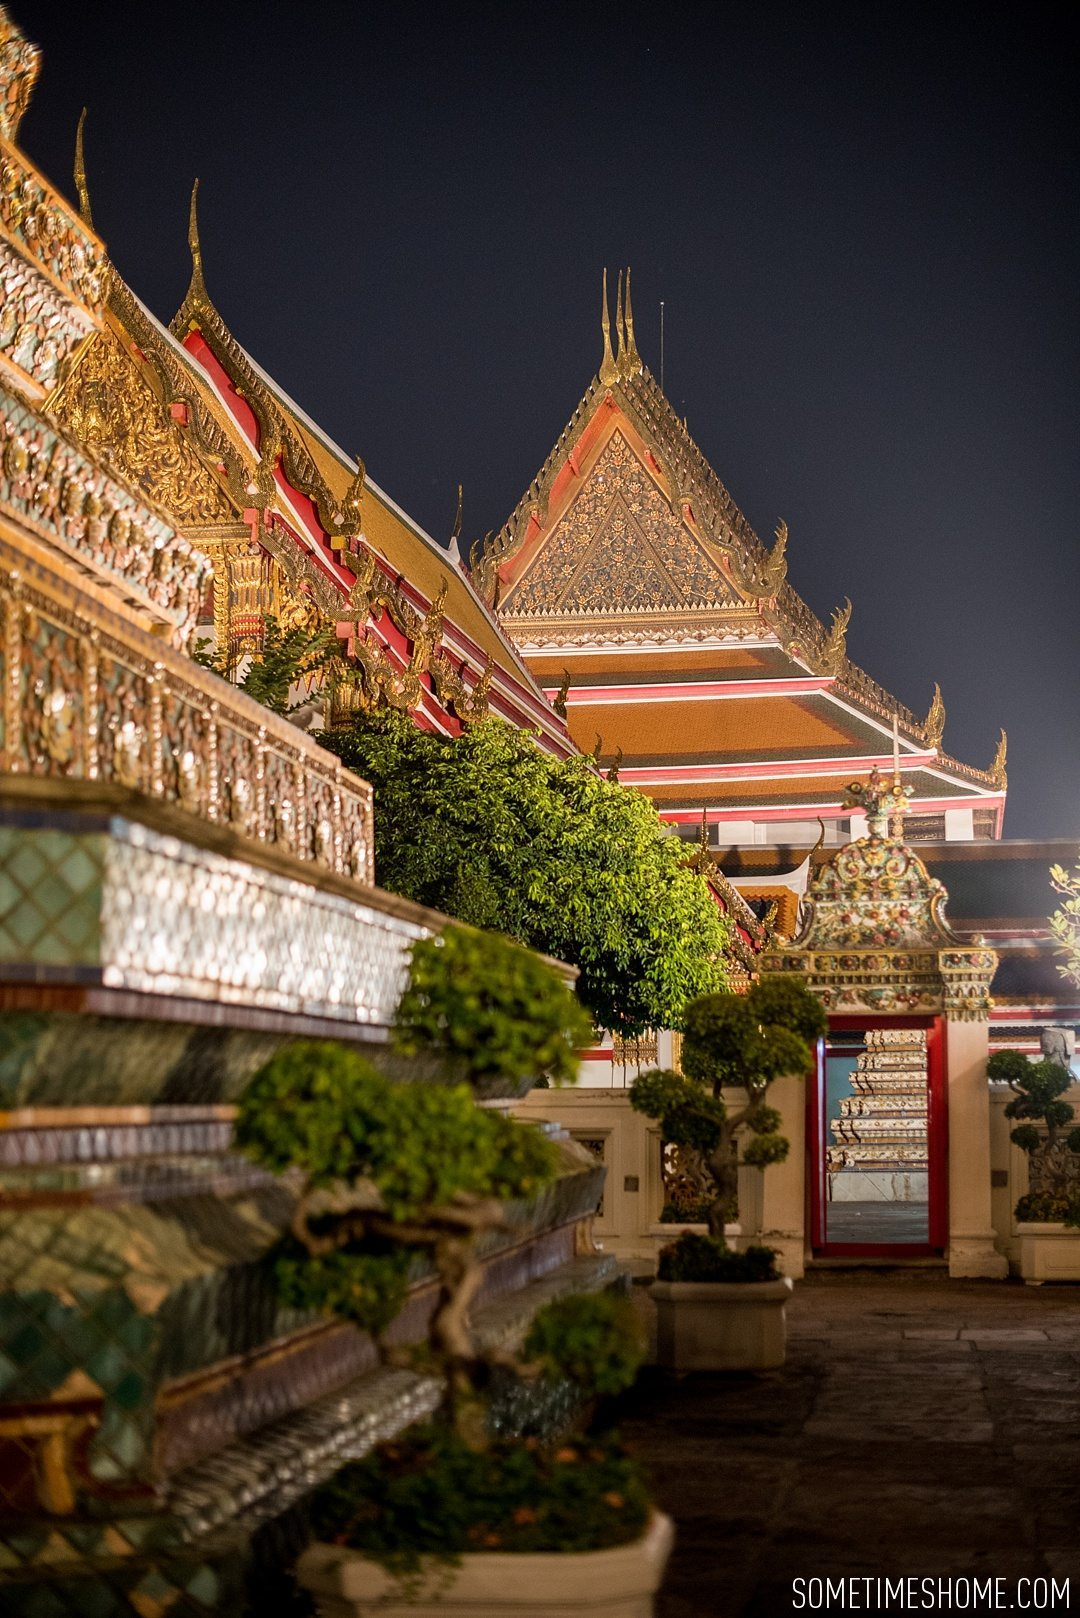 Photos of a Bangkok Night Tuk Tuk Tour You Have To Take in Thailand by Sometimes Home travel blog. Expique tour with pictures of the famous Wat Pho in the evening with bonsai trees.